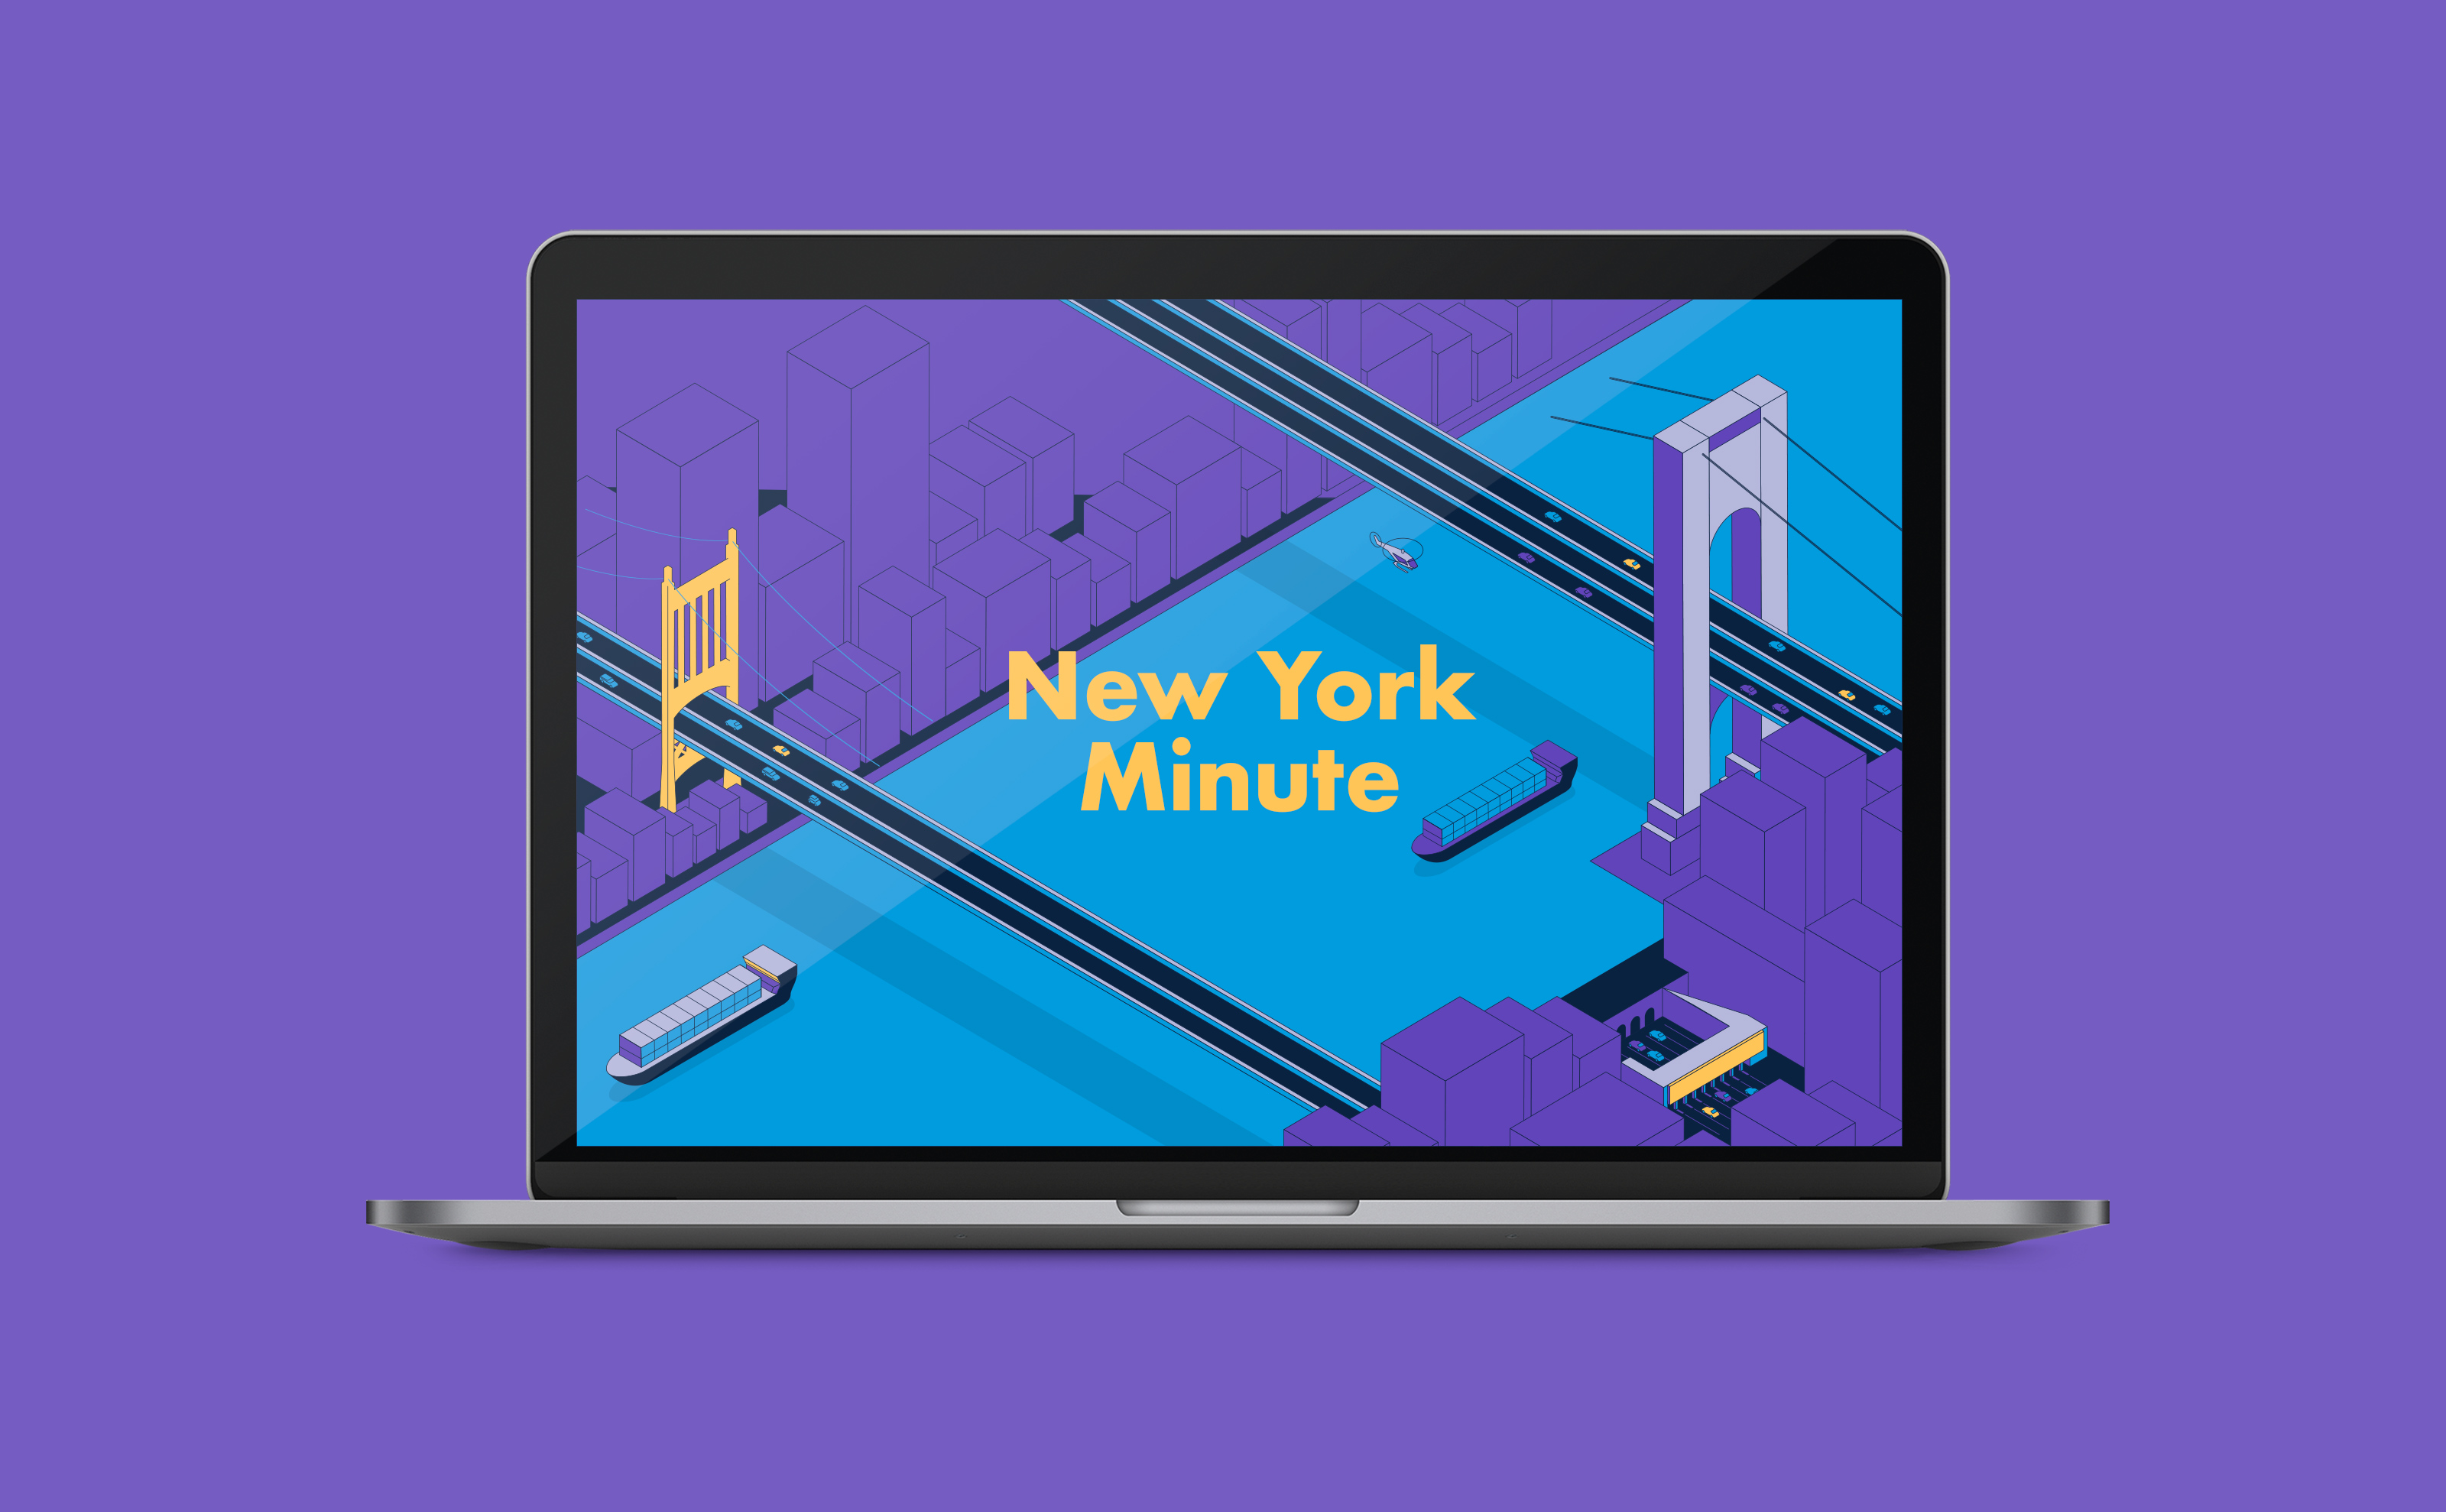 New York Minute illustration for United Airlines and Wall Street Journal on an Apple laptop